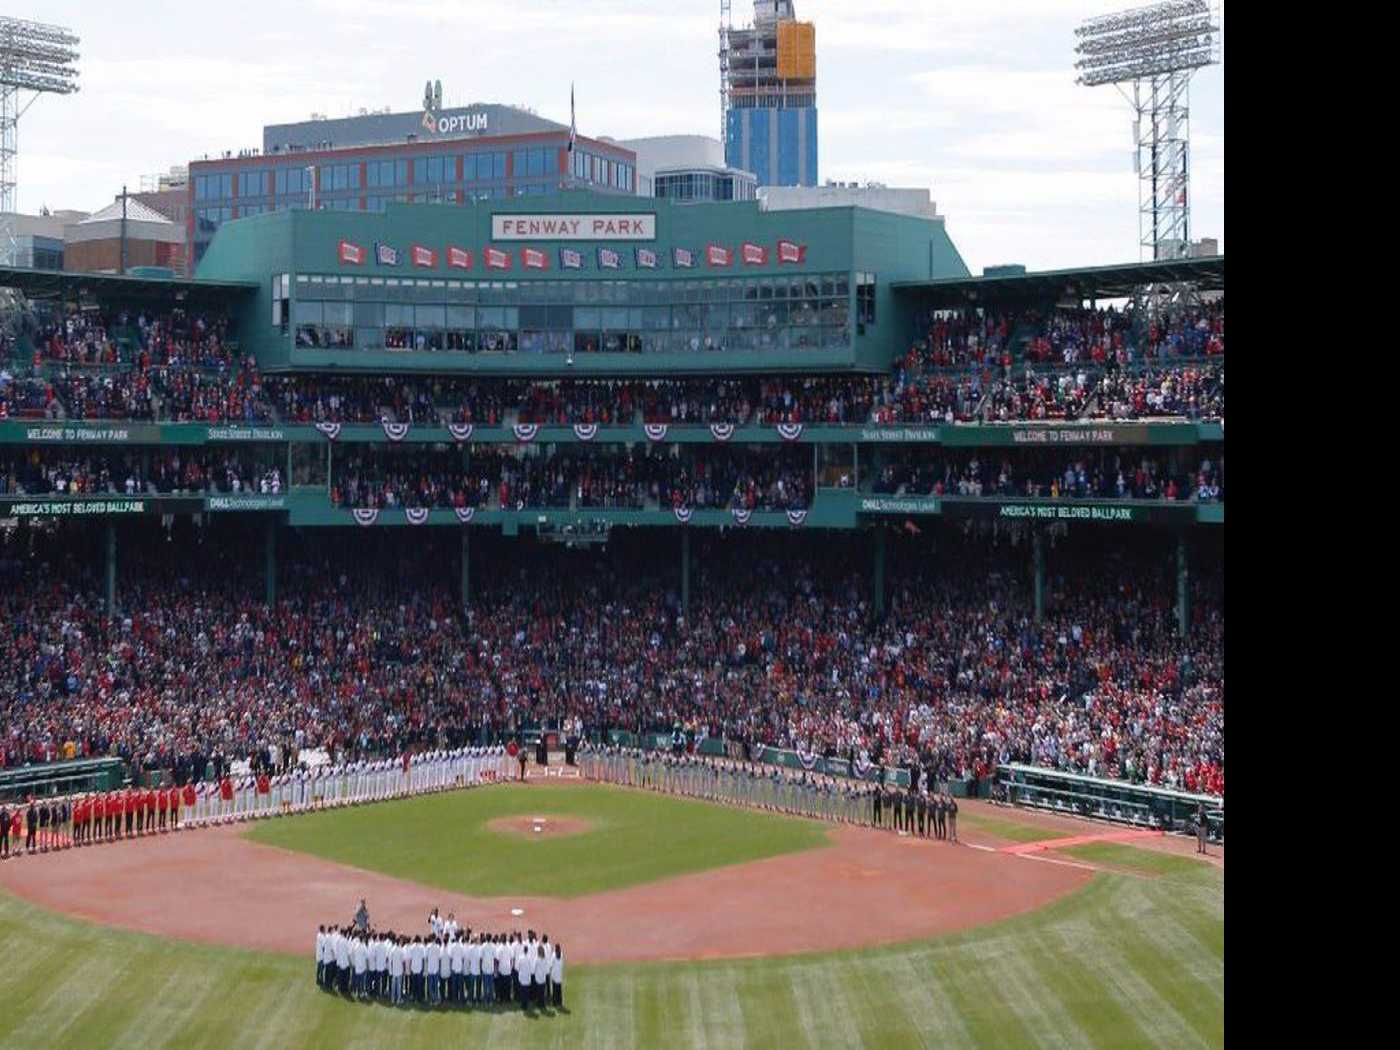 First Pitch at Pride Night @ Fenway Park to be Raffled